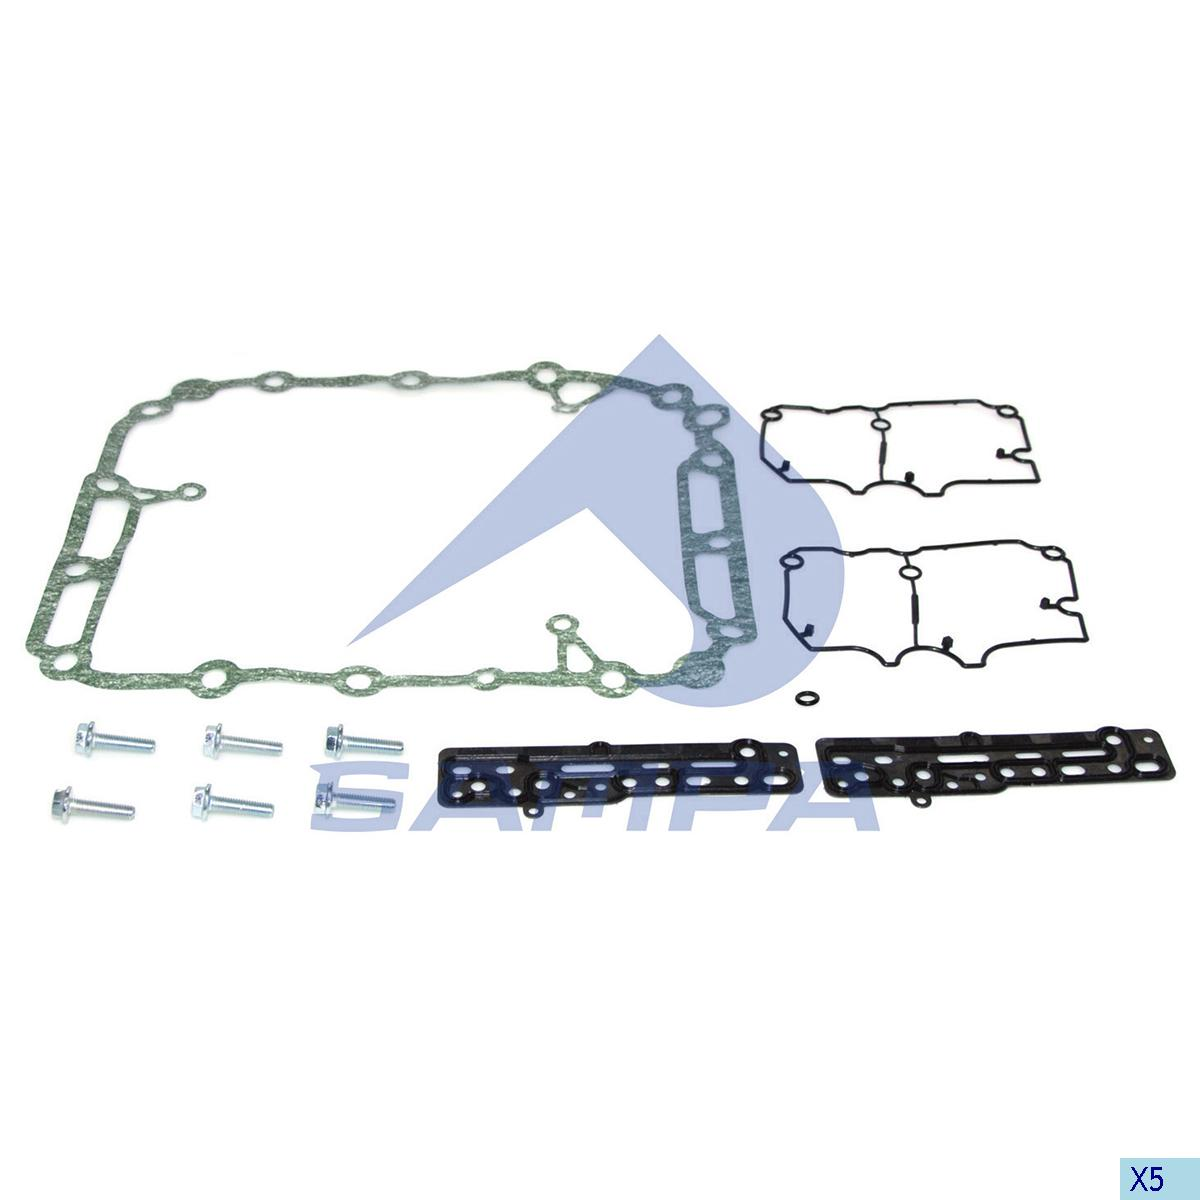 Gasket Kit, Gear Selector Housing, R.V.I., Gear Box